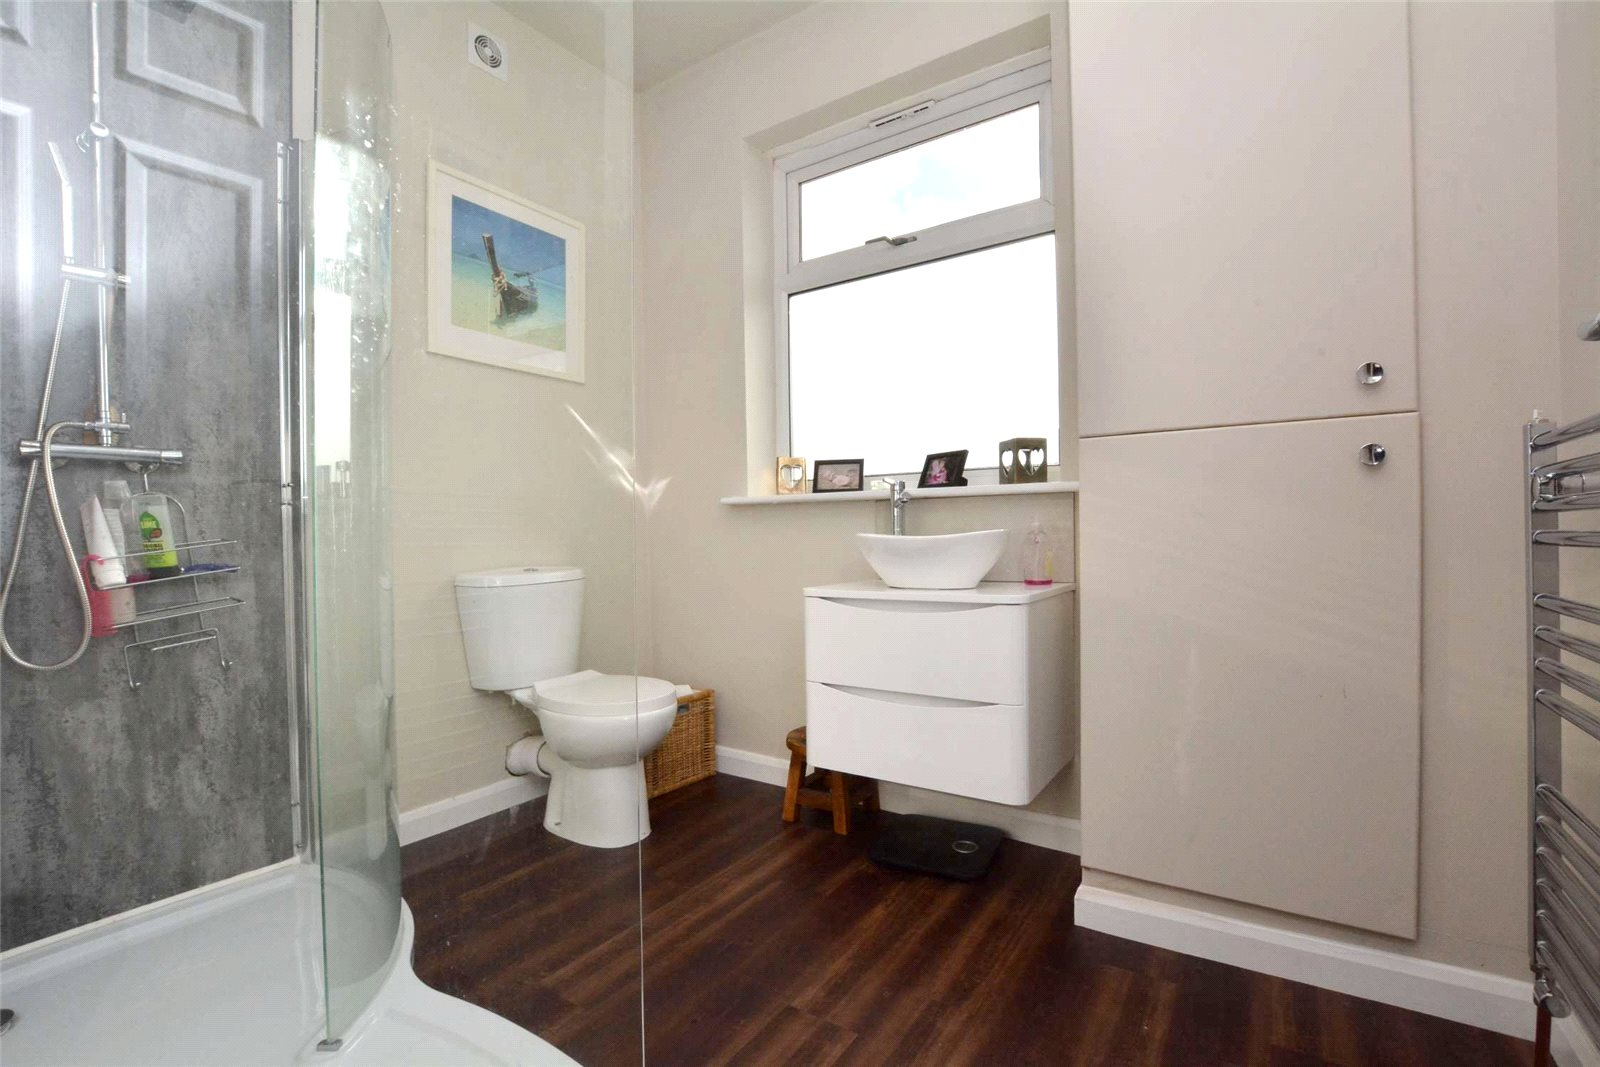 Property for sale in Pudsey, interior bathroom